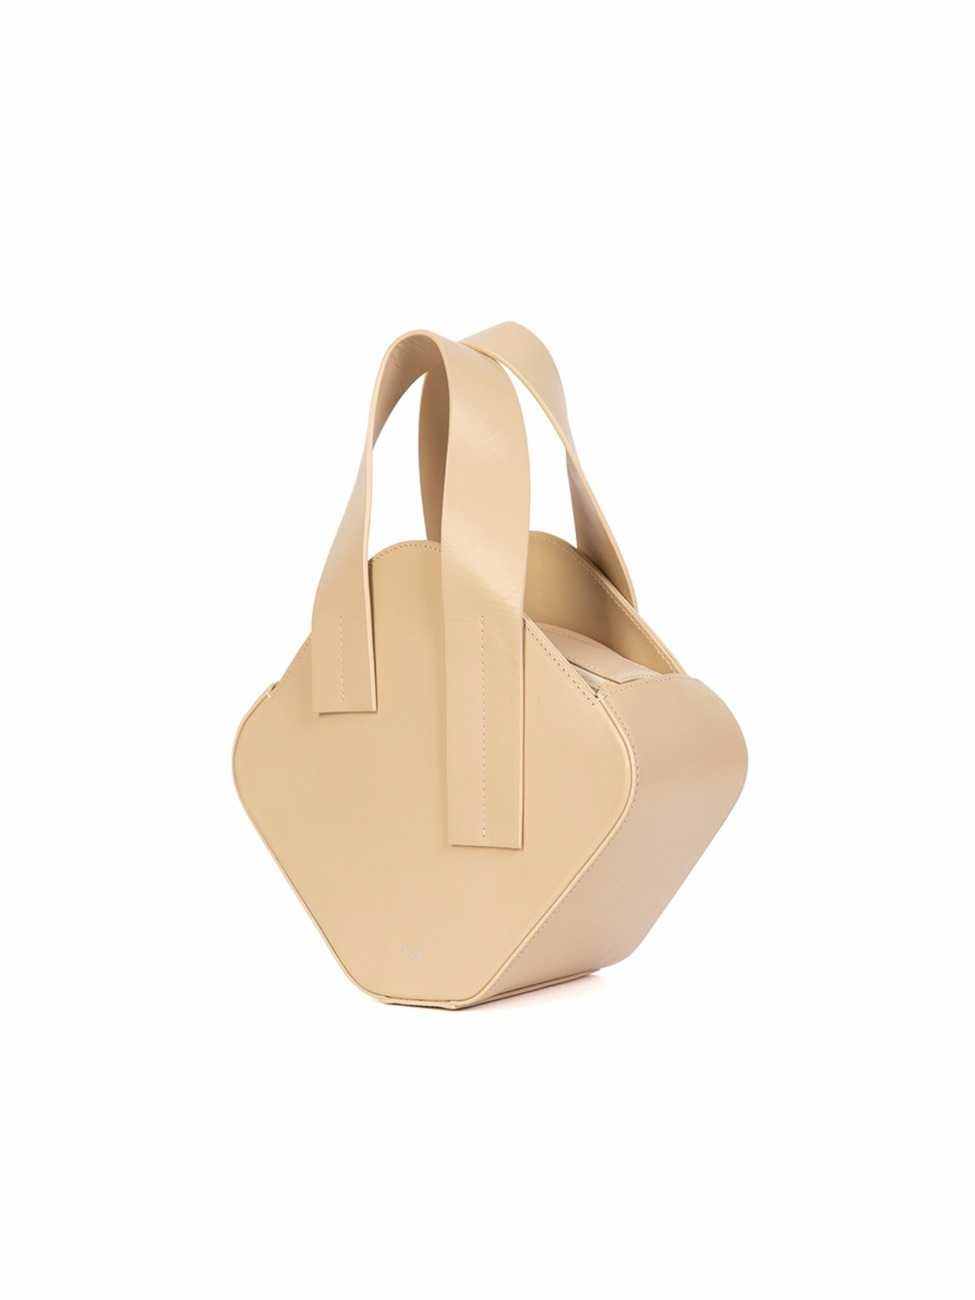 [SALE] MONIC BAG _ NUDE BEIGE